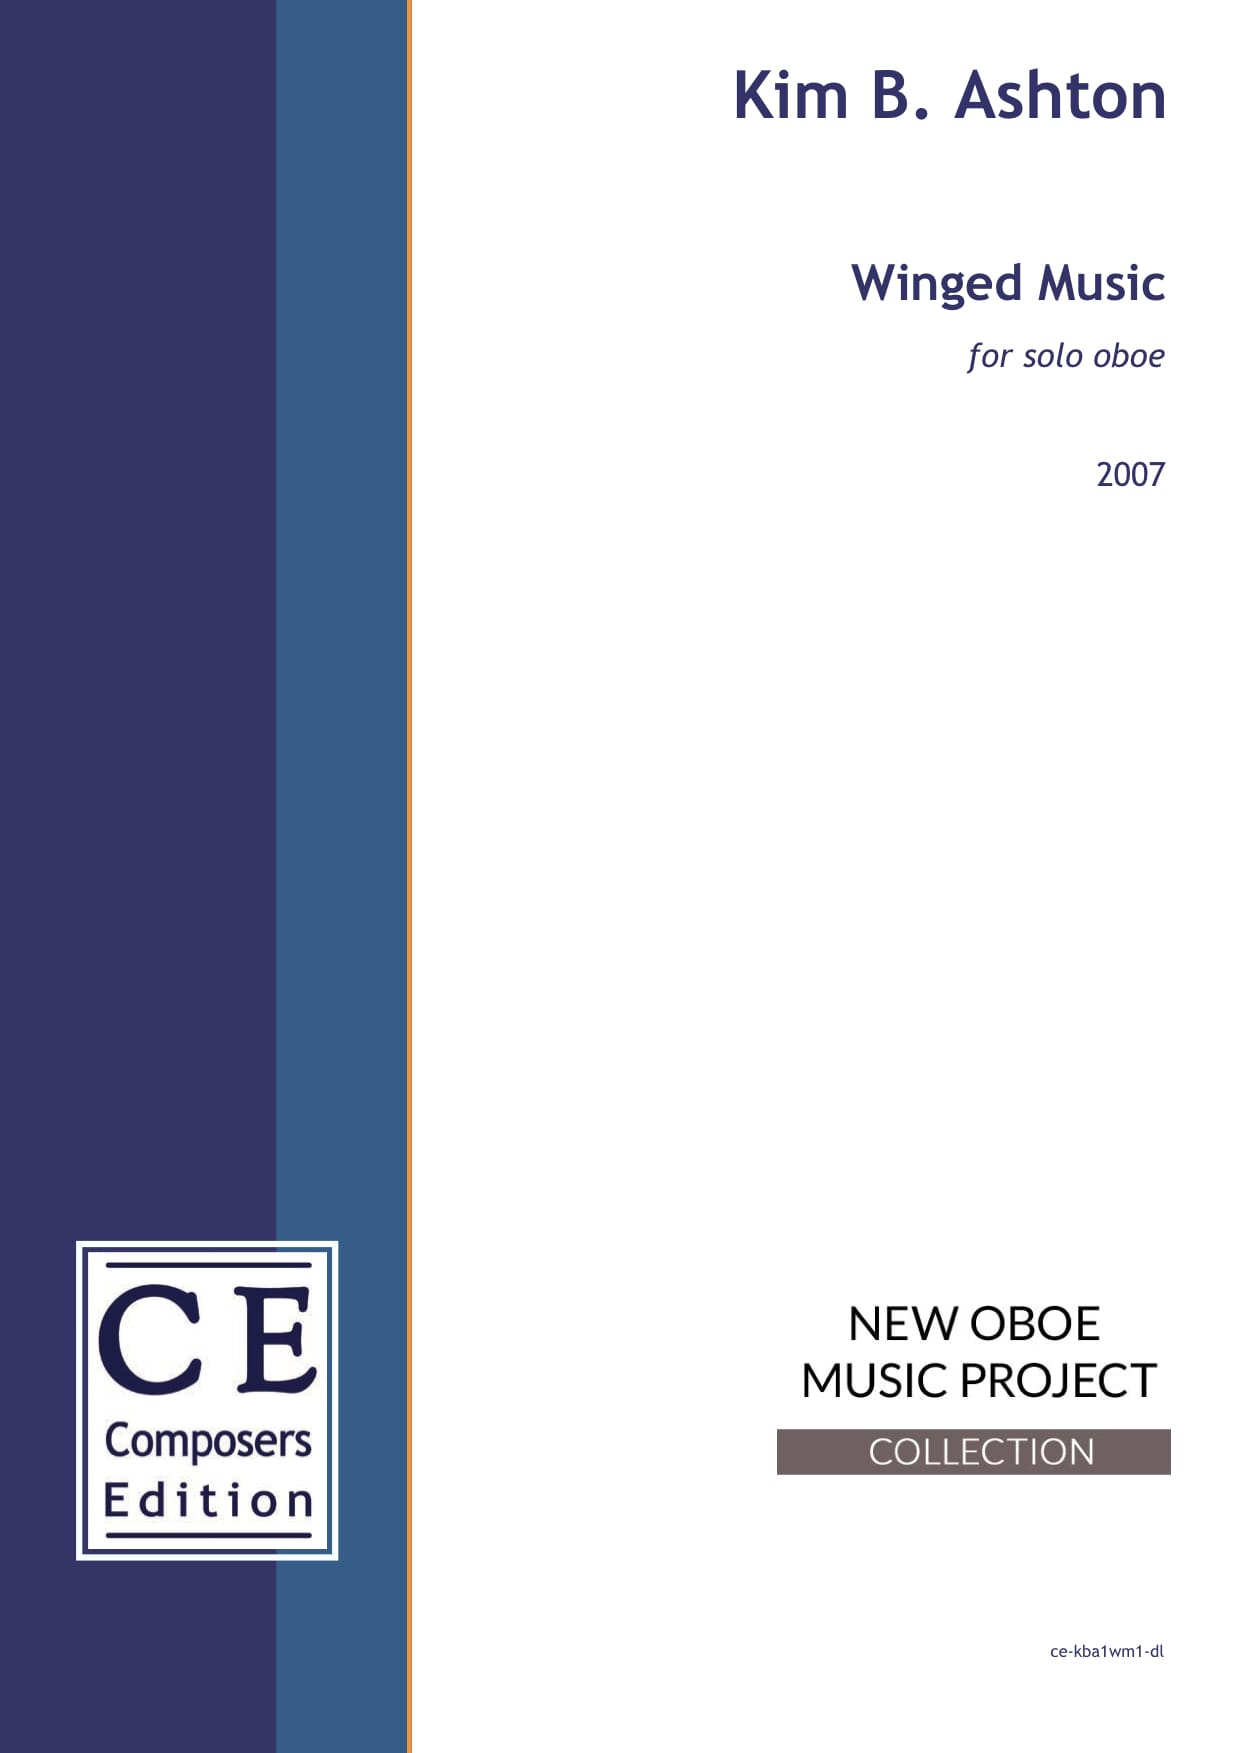 Kim B. Ashton: Winged Music for solo oboe